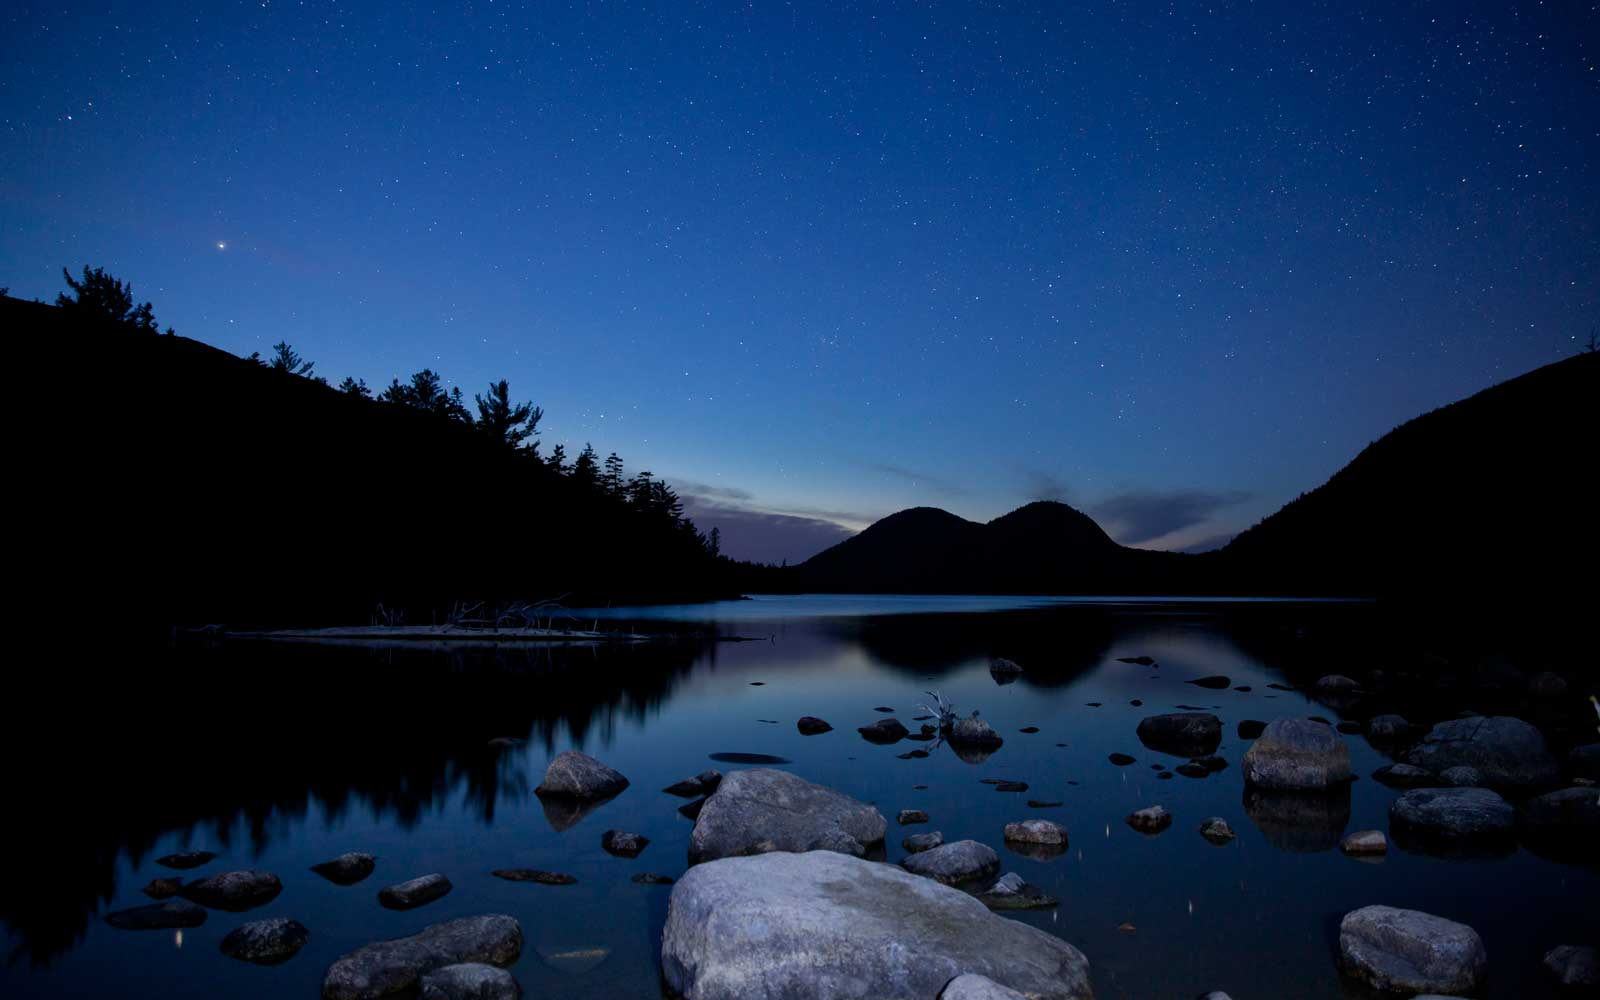 Jordan pond in Acadia National Park with night stars.